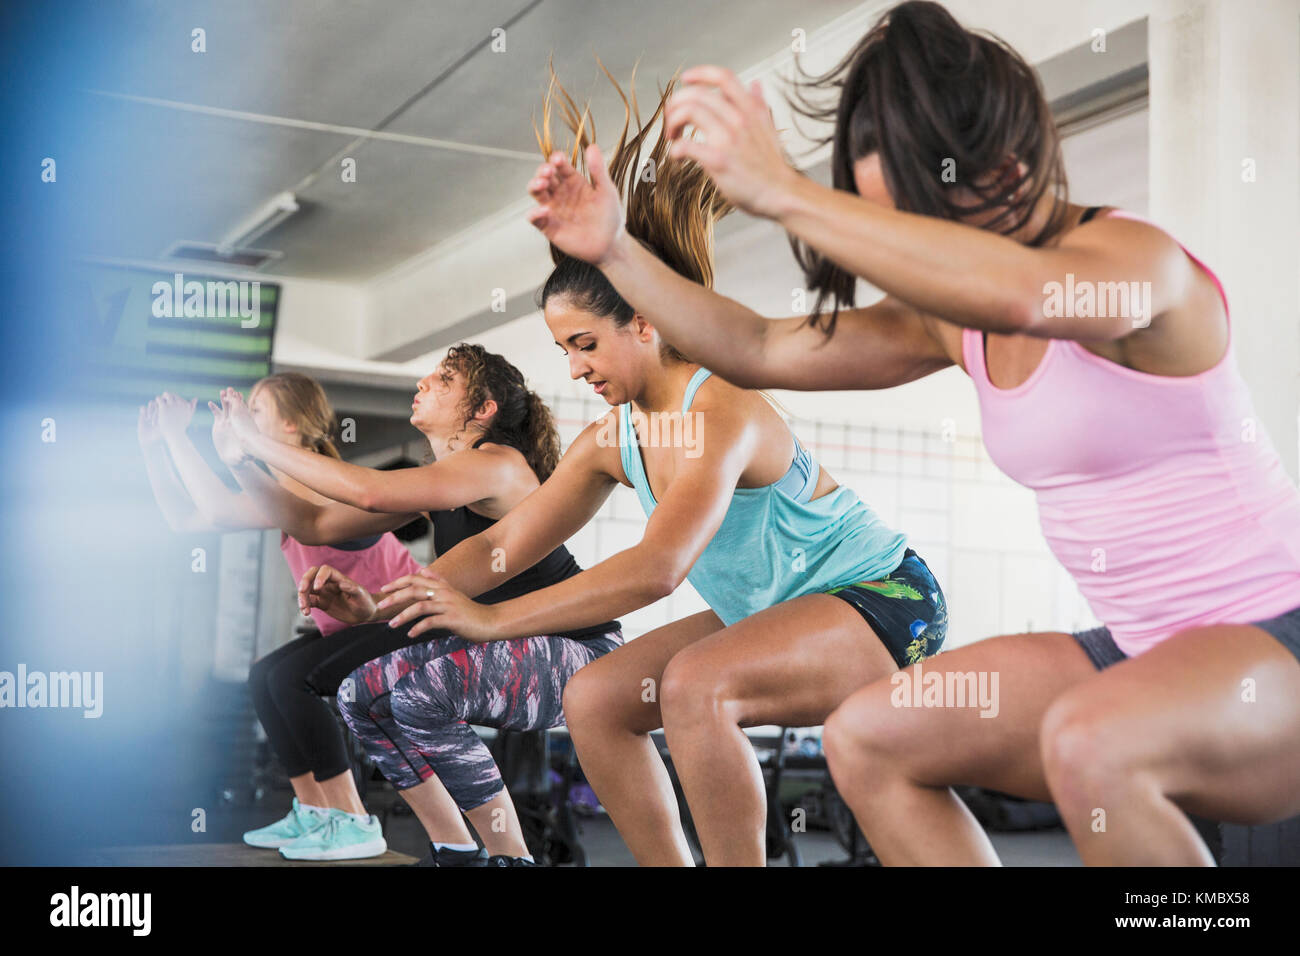 Young women doing jump squats in exercise class Stock Photo